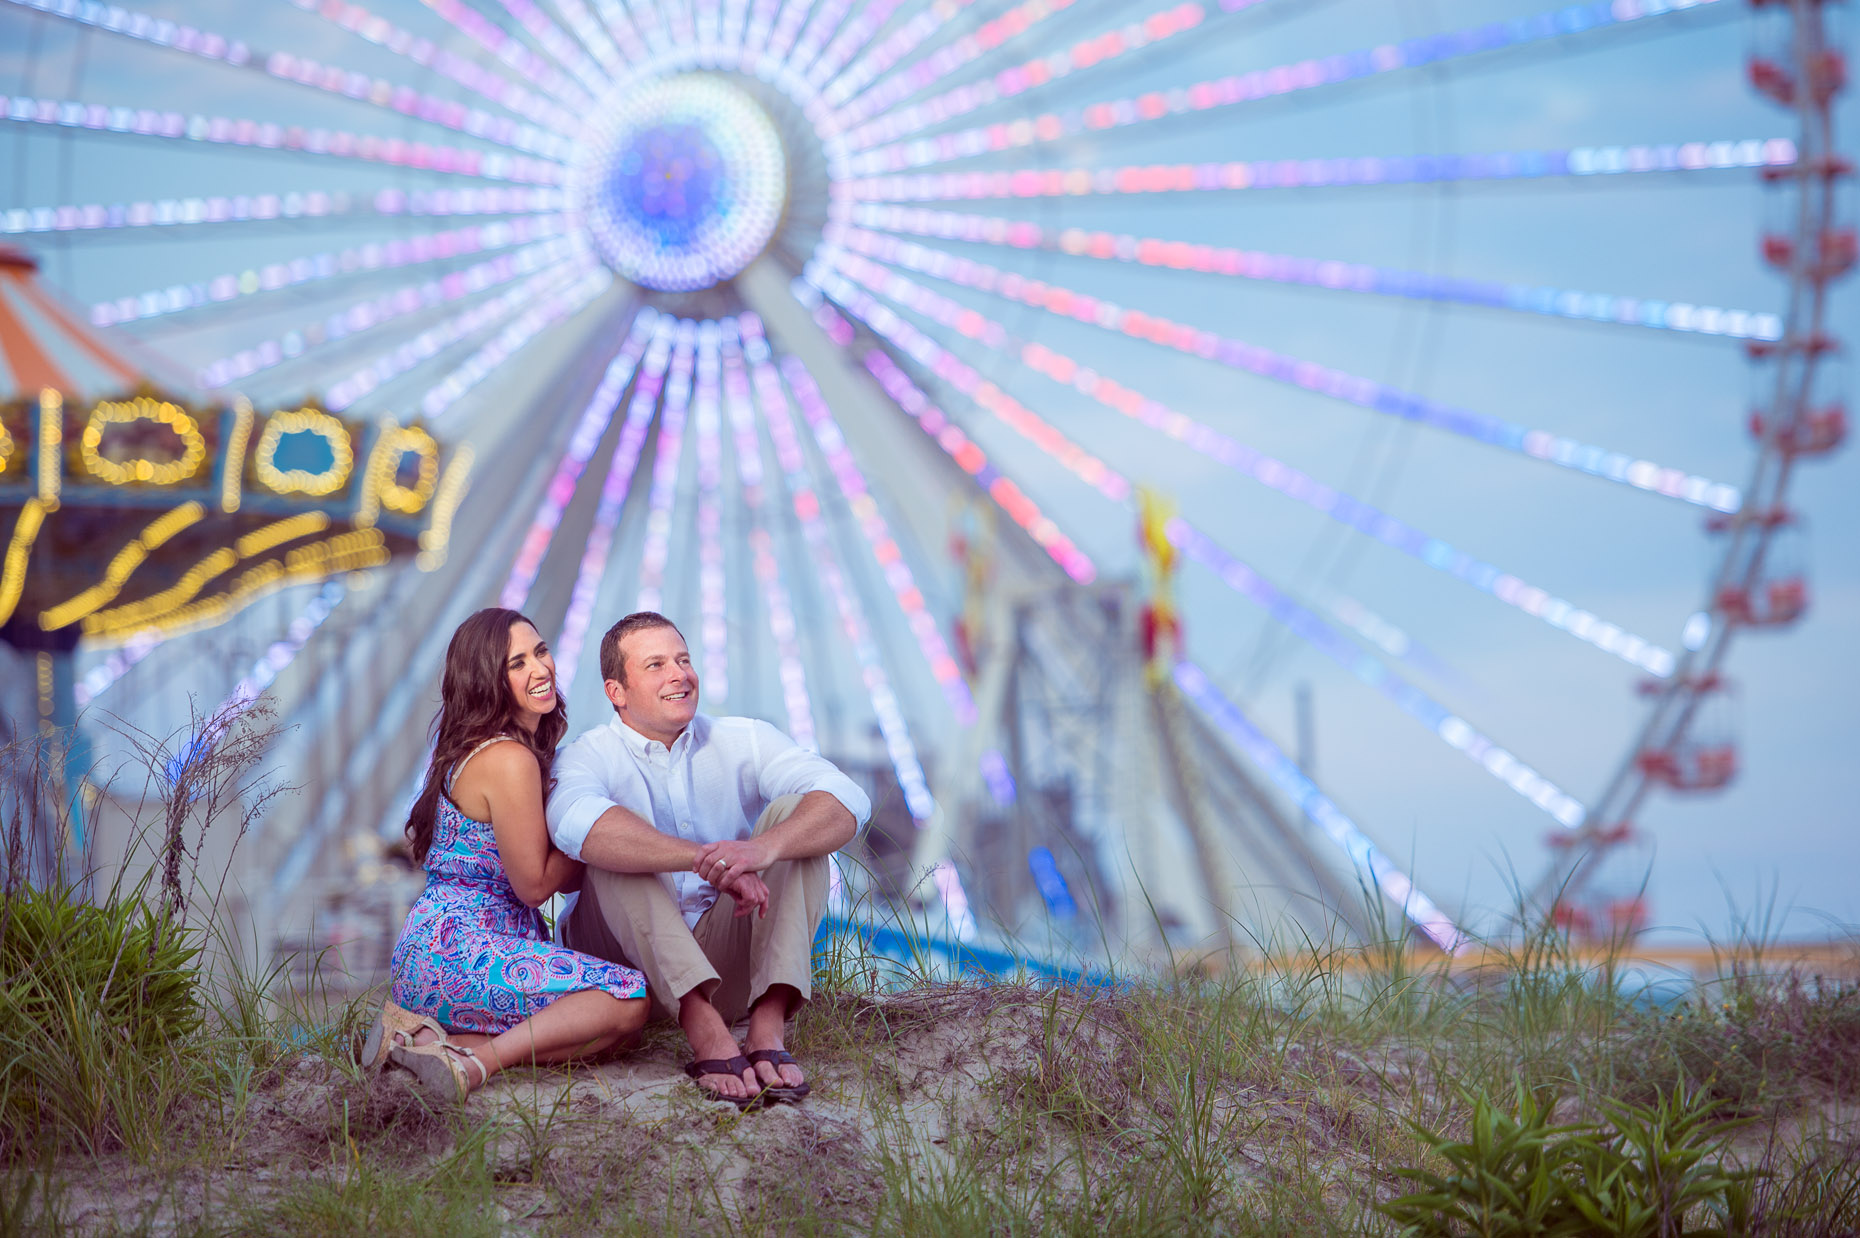 Editorial Photographer - Magazine - Ferris Wheel - park - couple